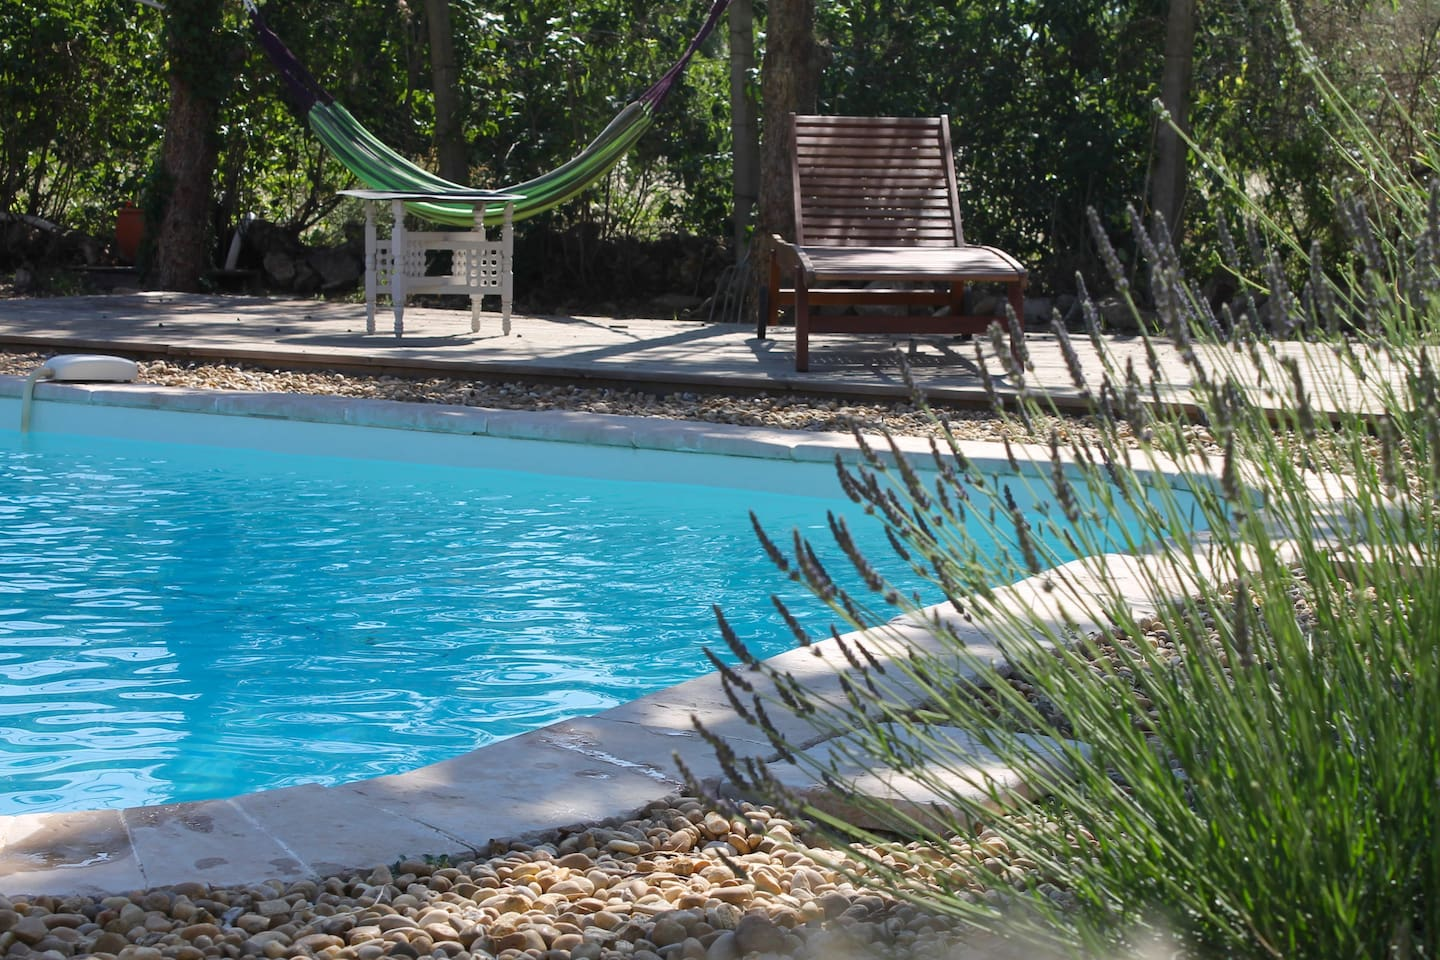 Gorgeous pool with hammocks and loungers